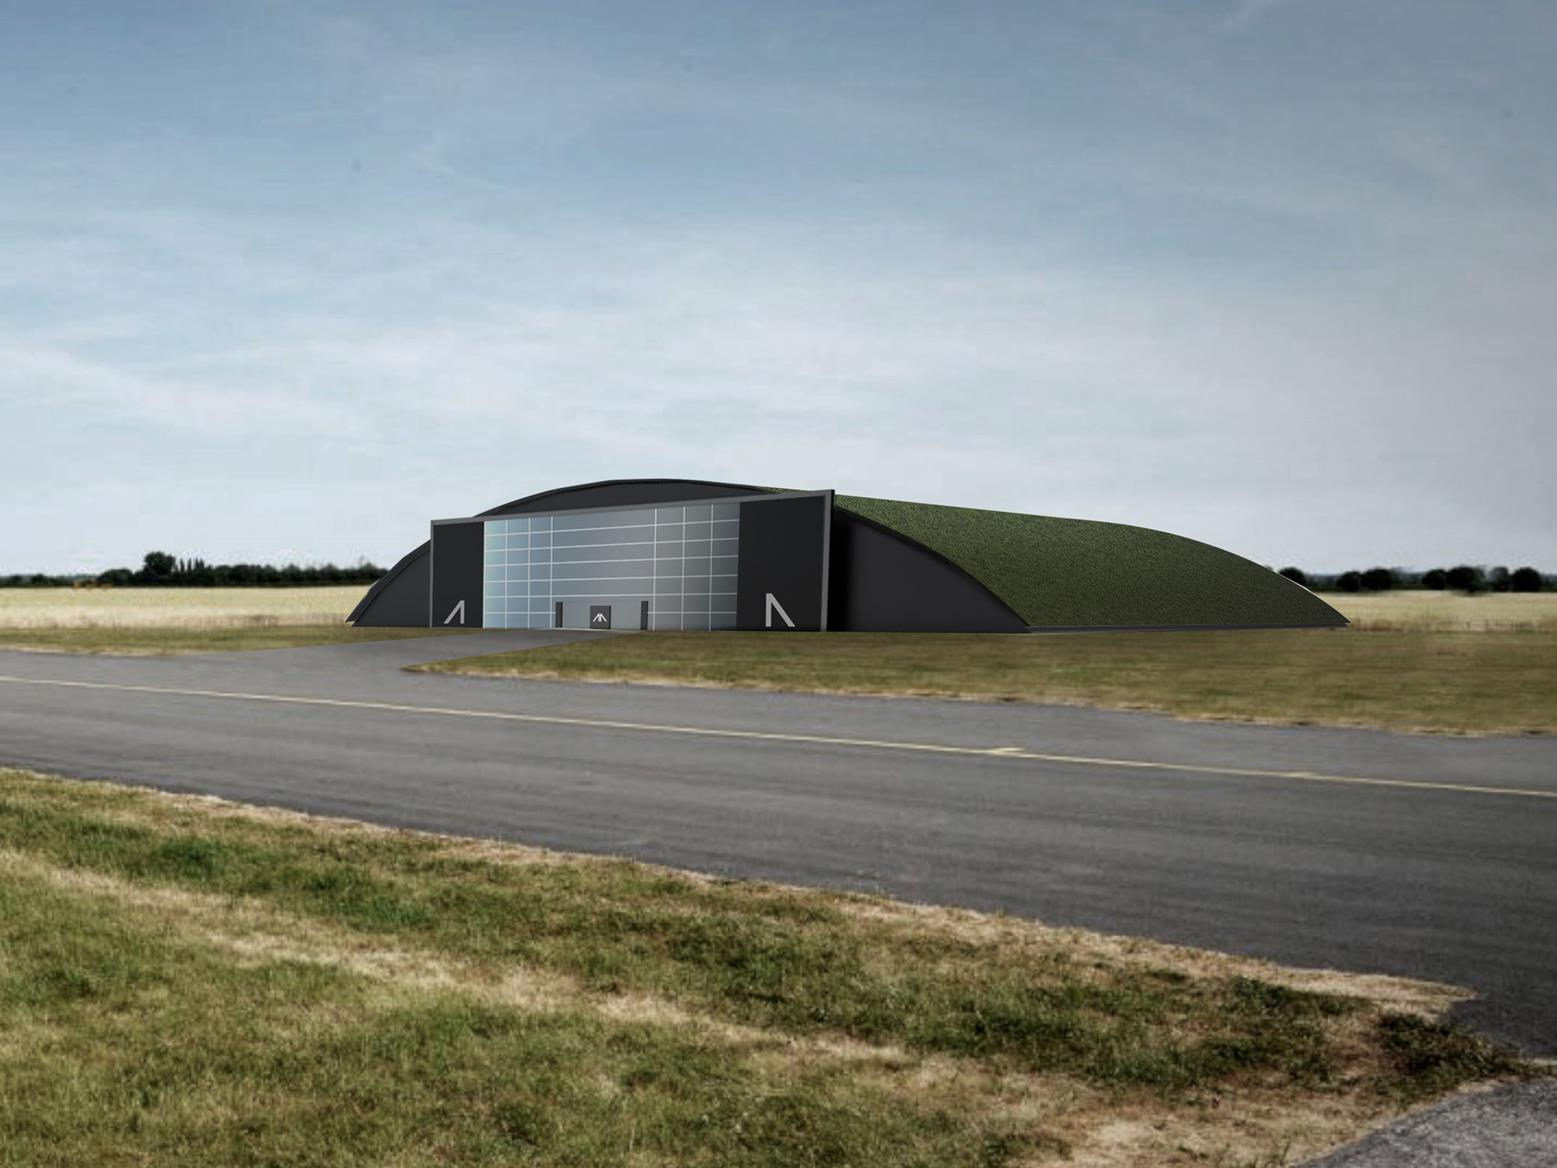 Artist's impression of the Arc hanger